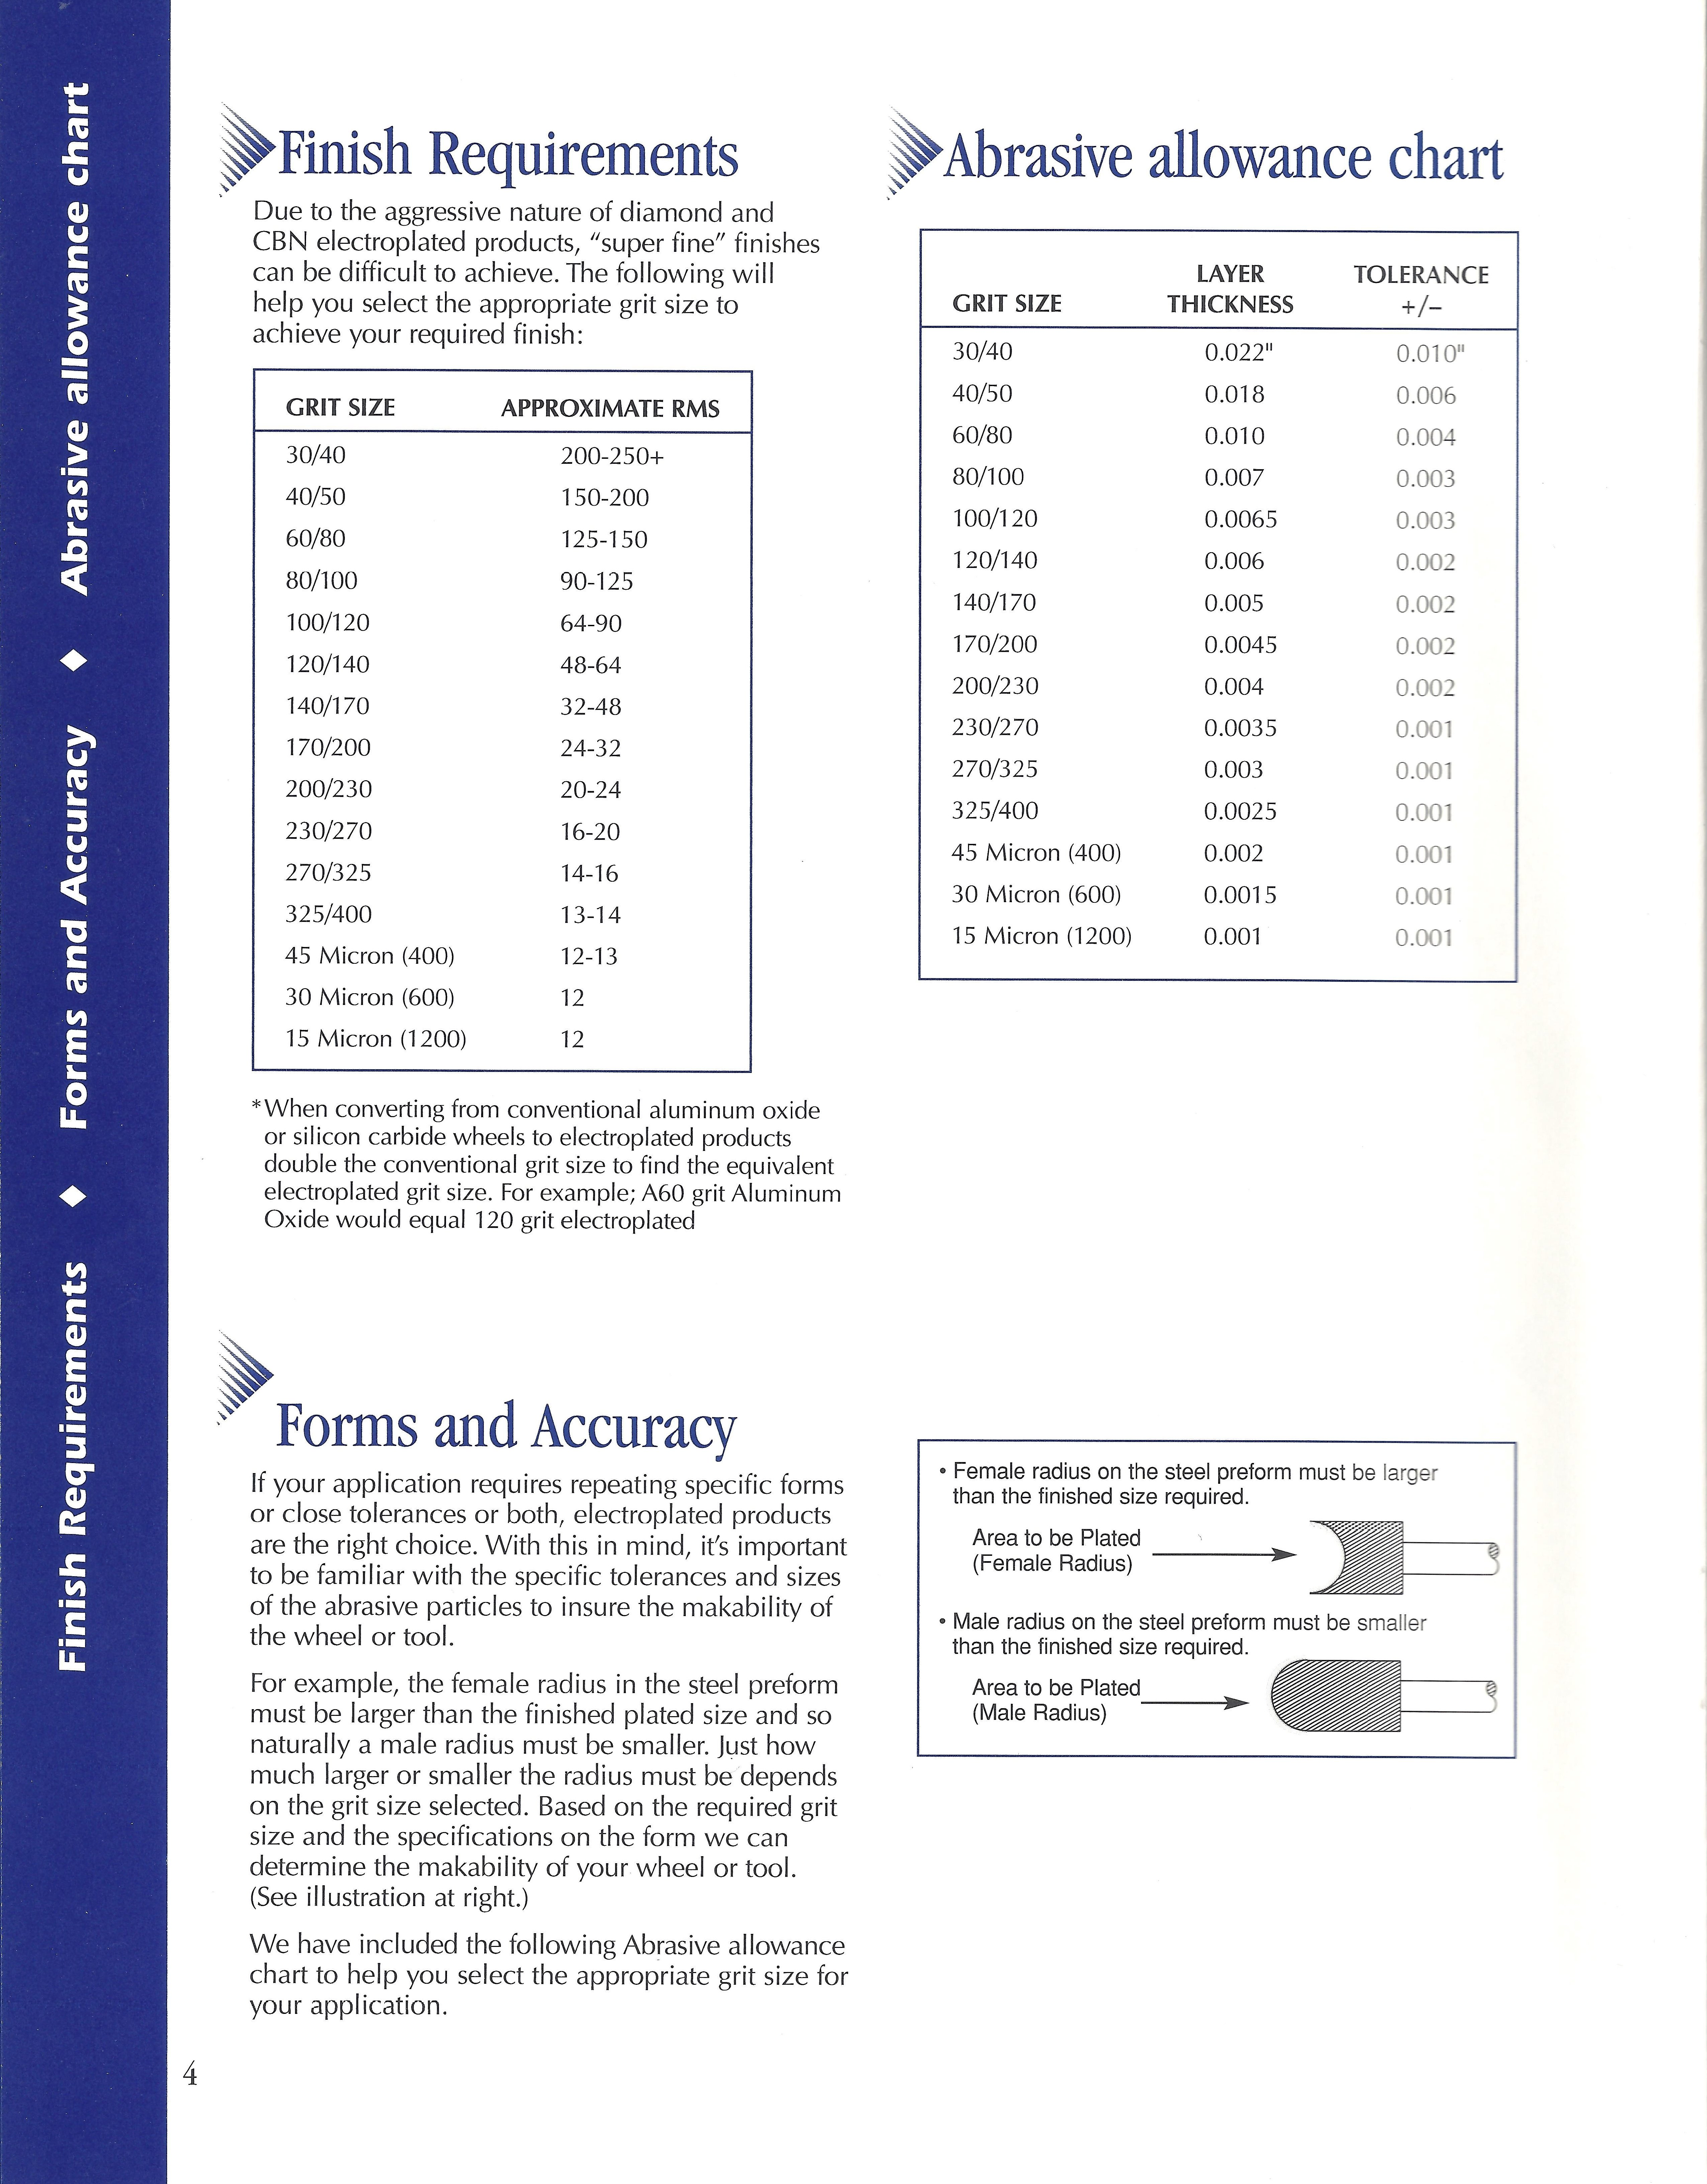 catalog-in-pdf-combined-page-04-image-0001.jpg